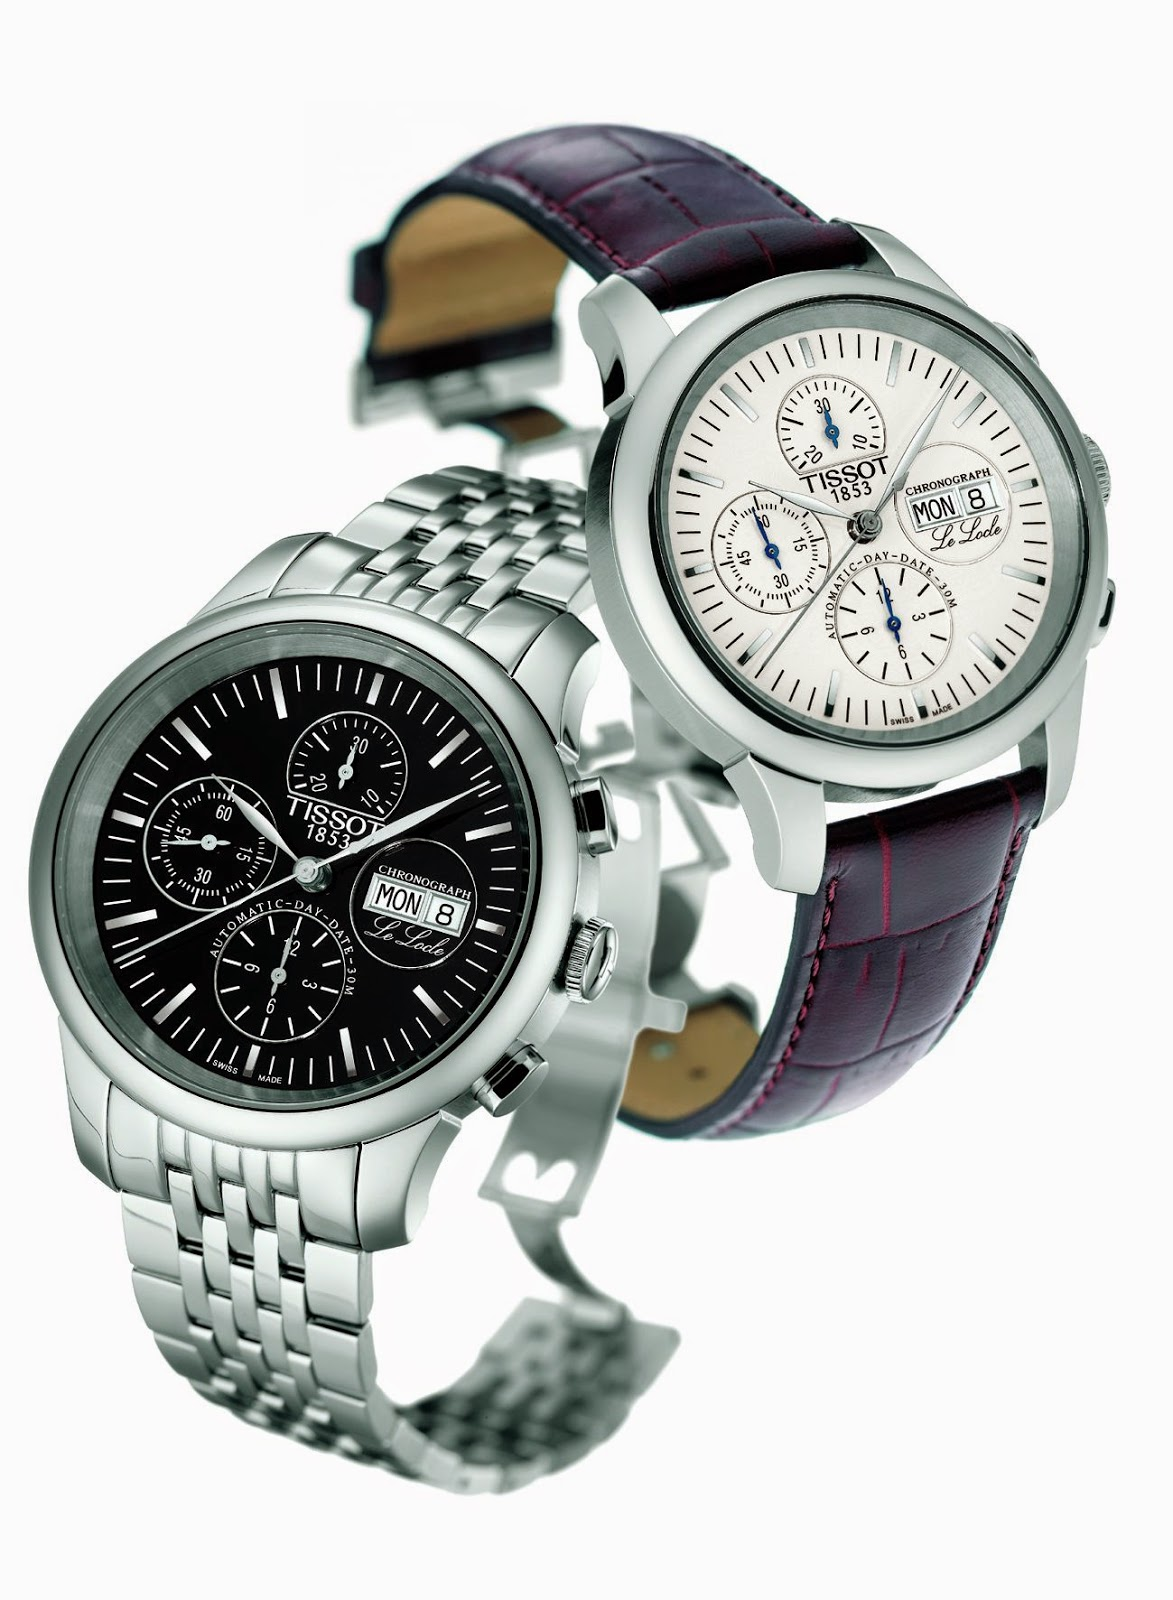 TISSOT Le Locle Luxury automatic chronograph watch